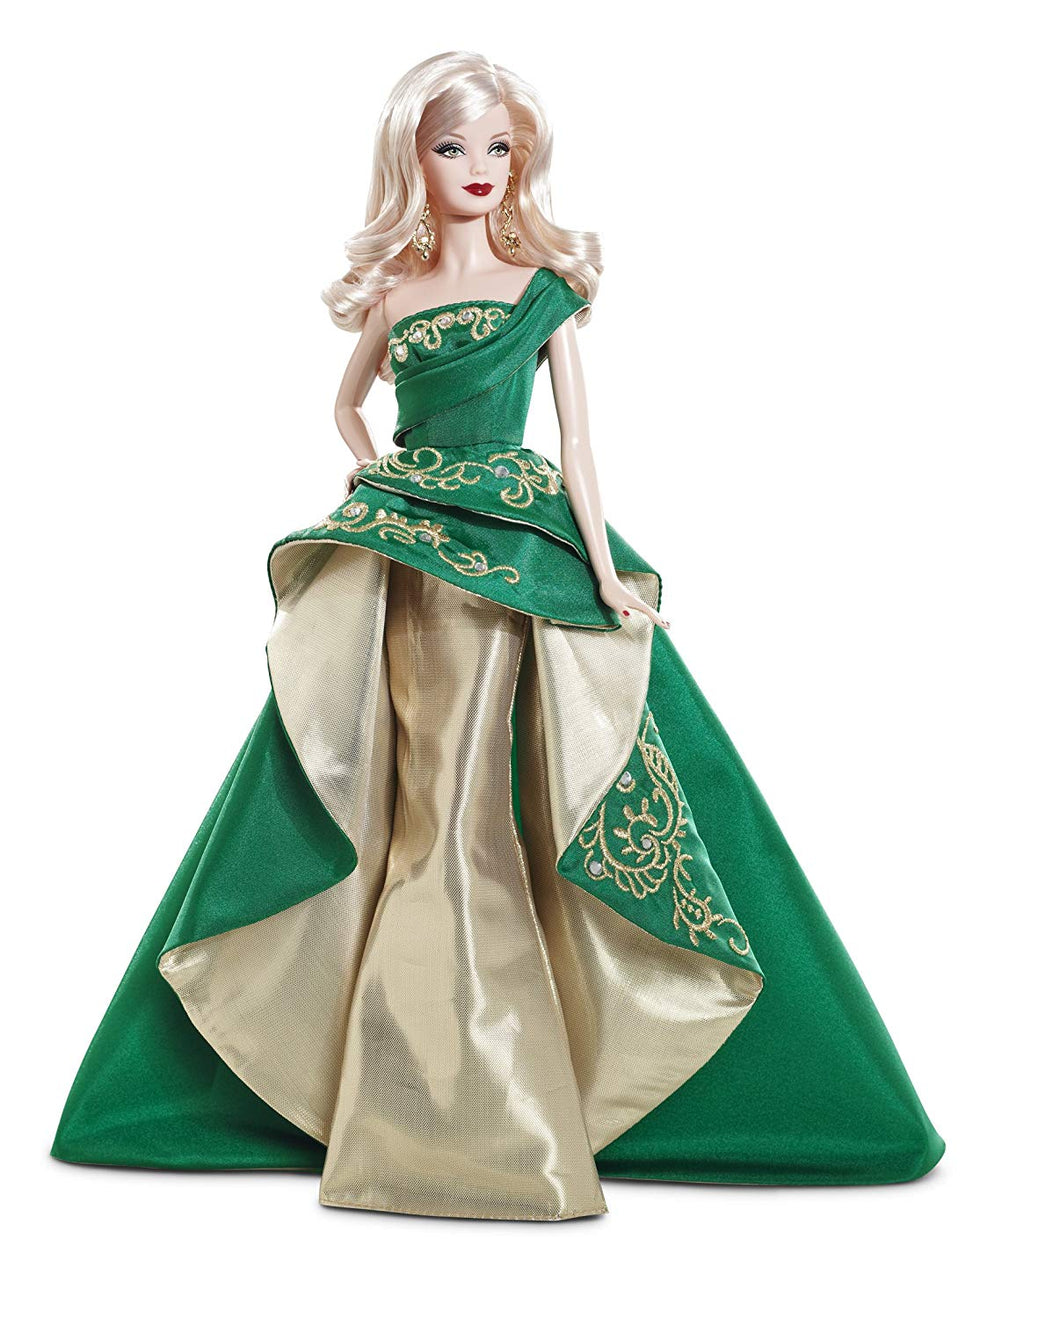 Barbie Collector 2011 Holiday Doll